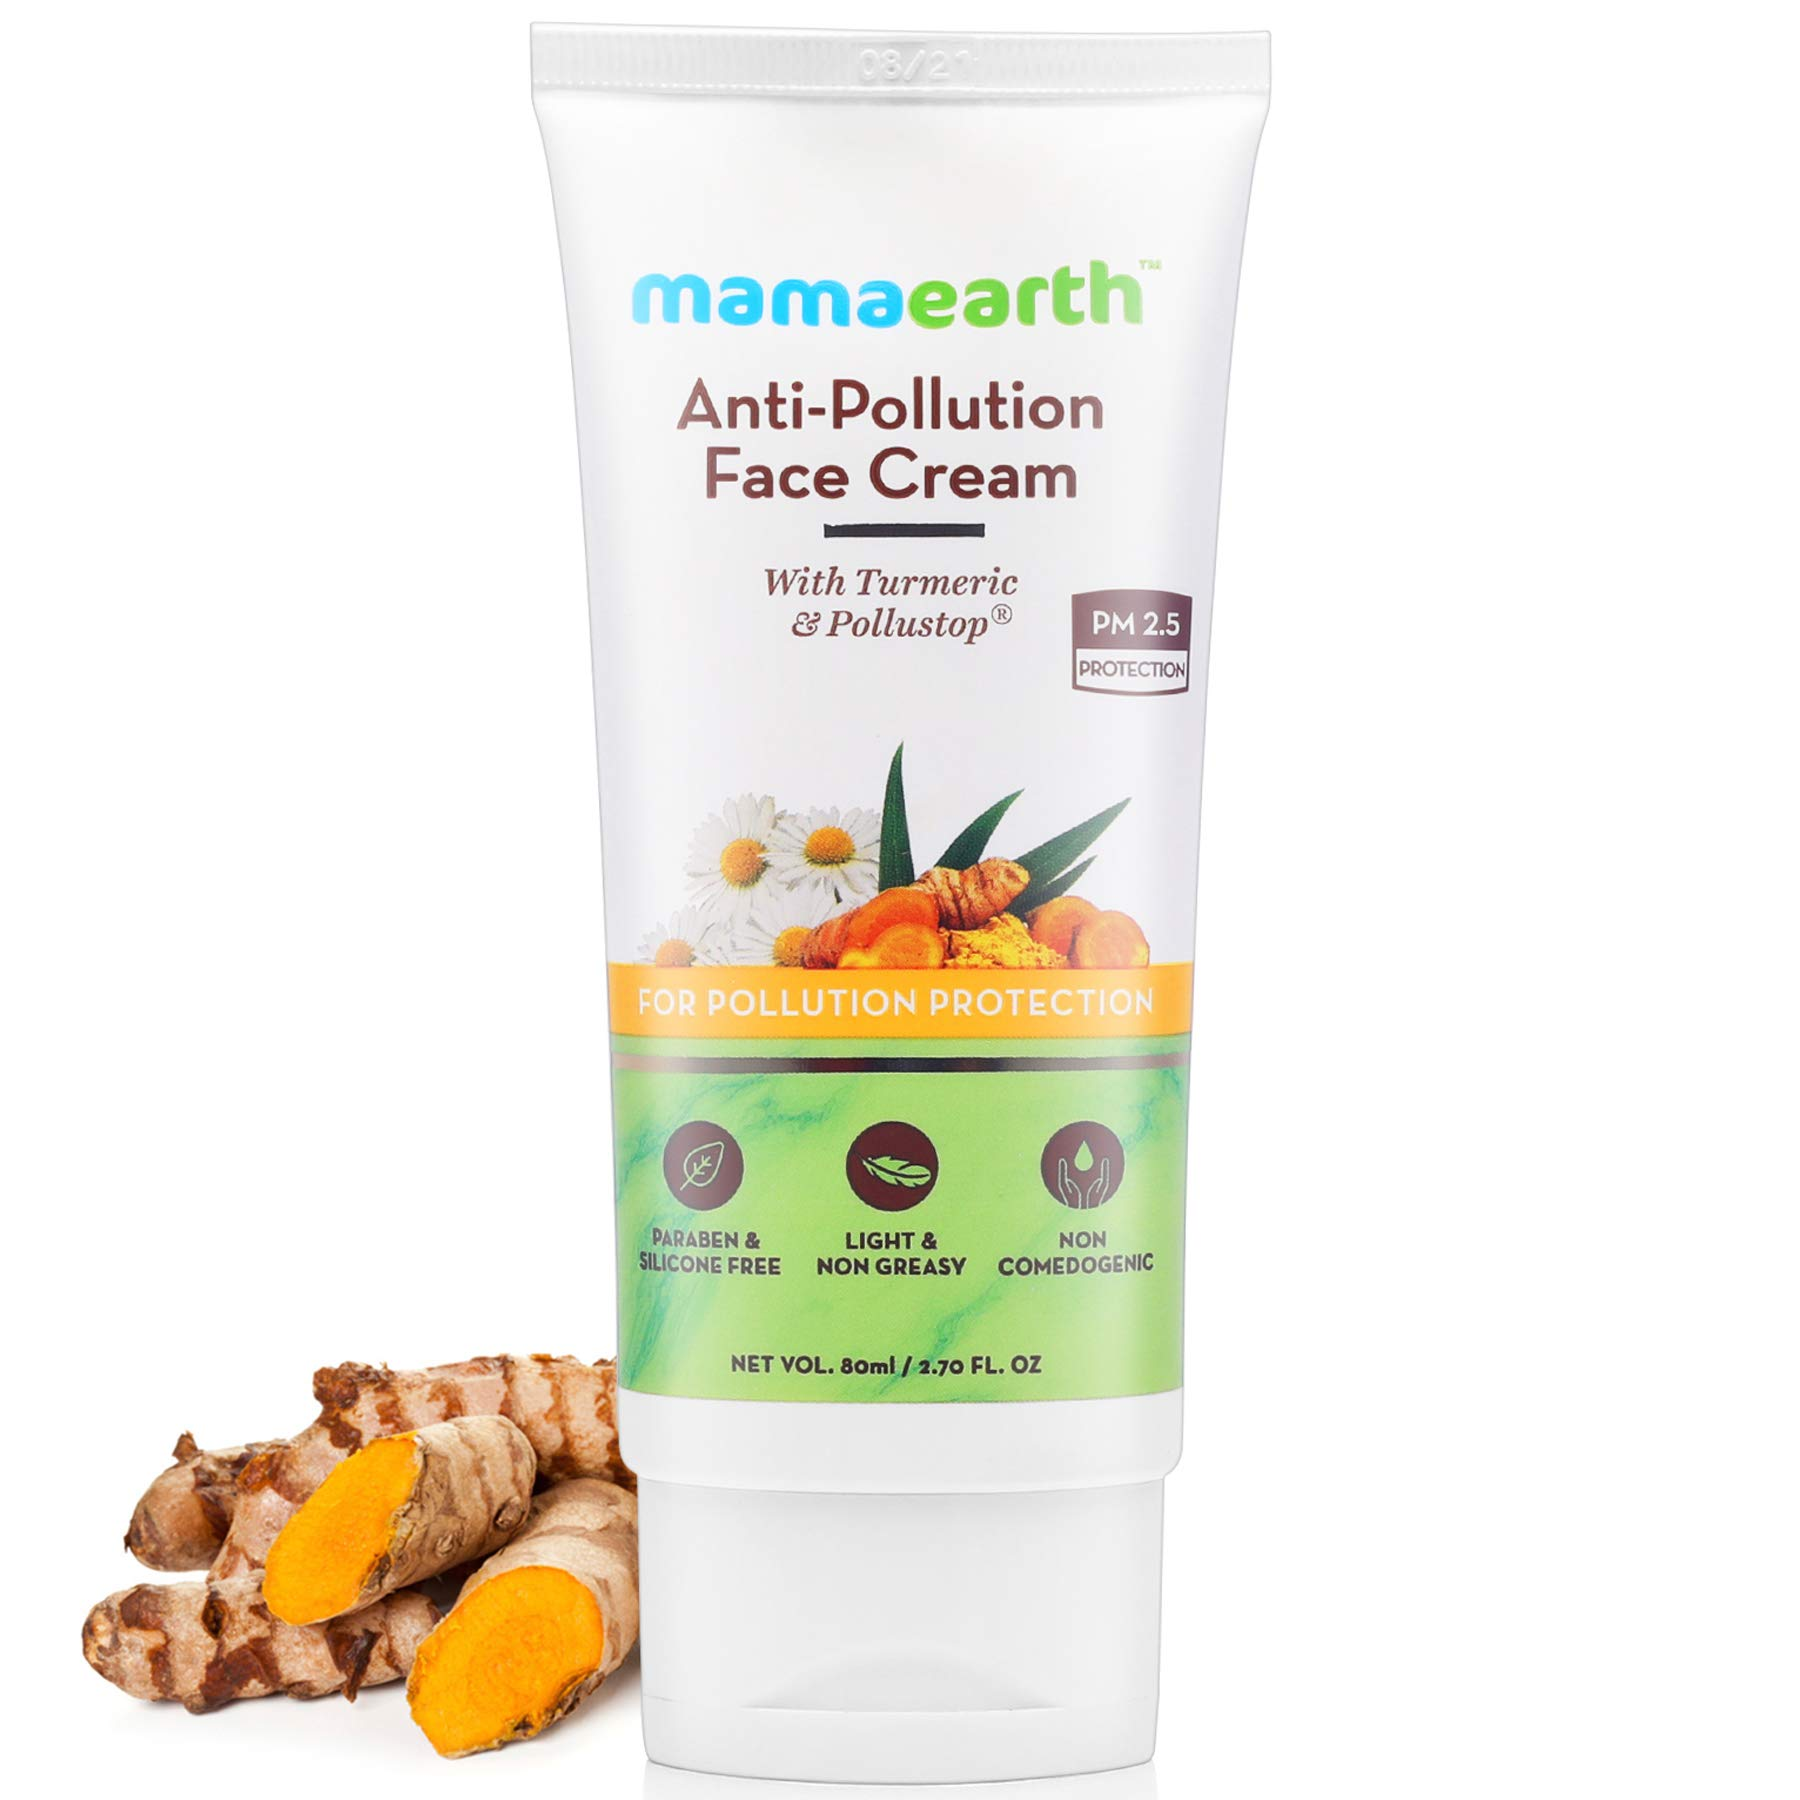 Mamaearth Anti-Pollution Daily Face Cream for Dry & Oily Skin with Turmeric & Pollustop® For a Bright Glowing Skin 80ml